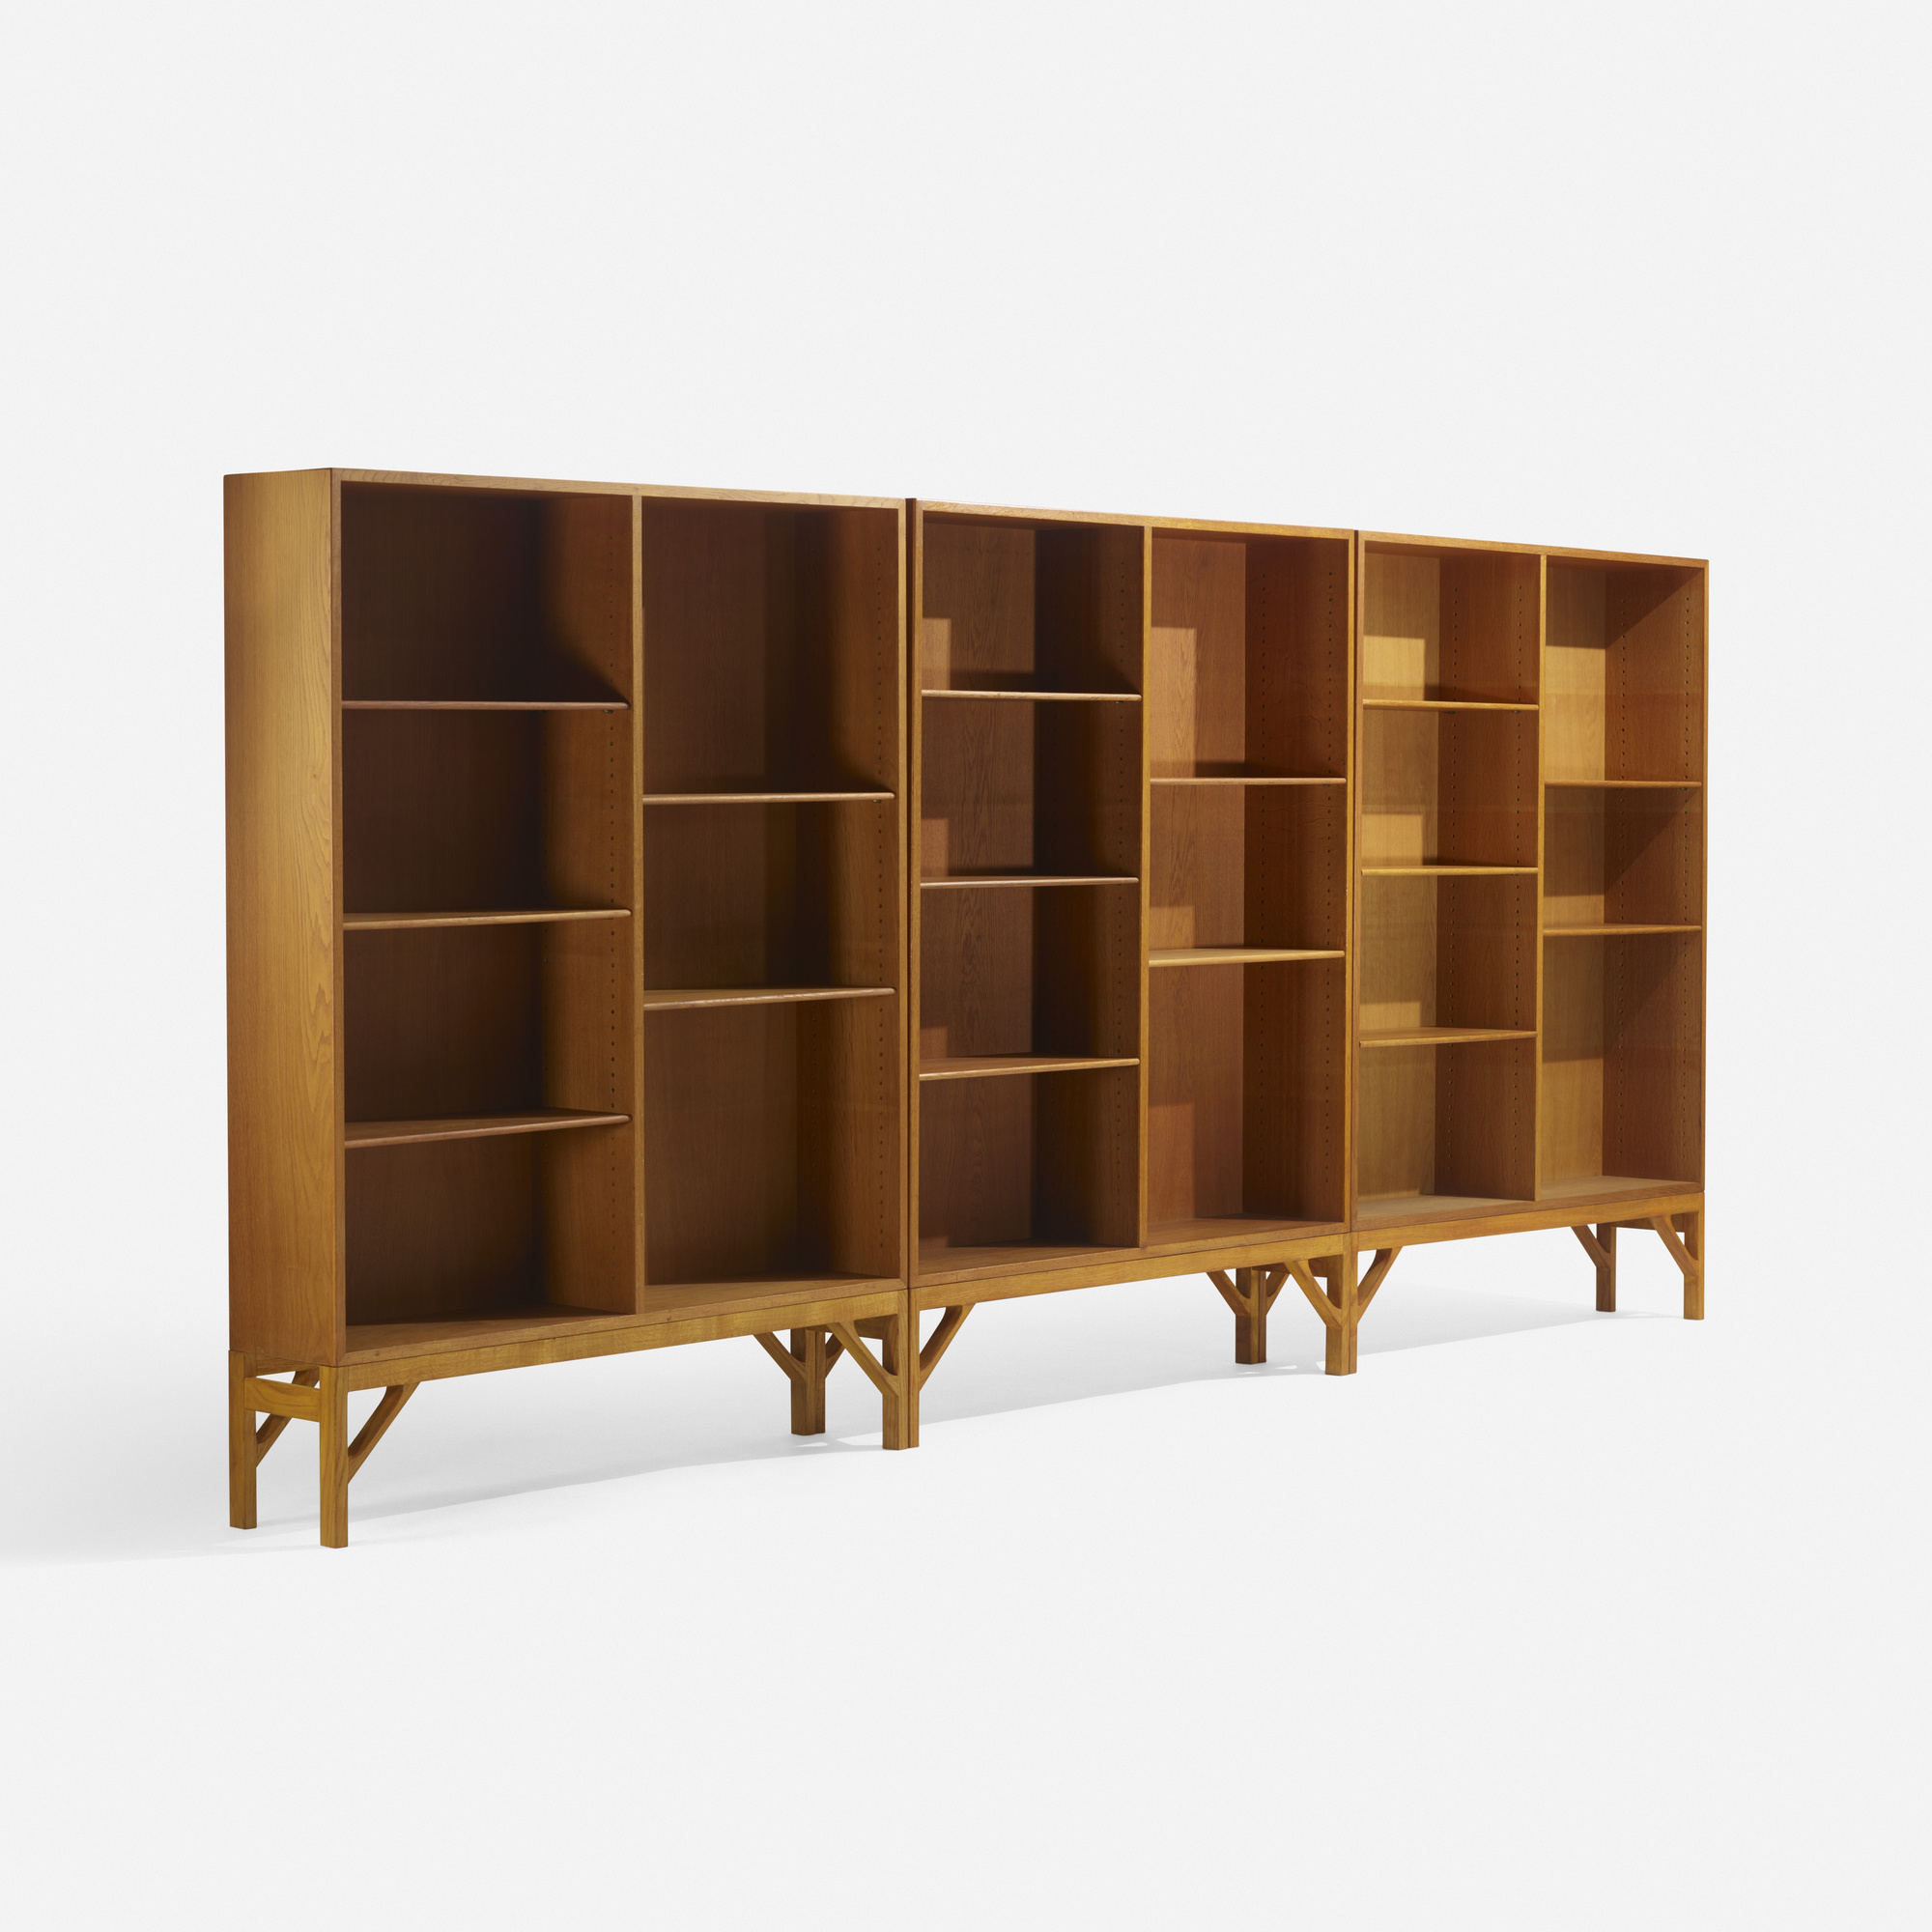 278: Børge Mogensen / bookcases, set of three (1 of 2)